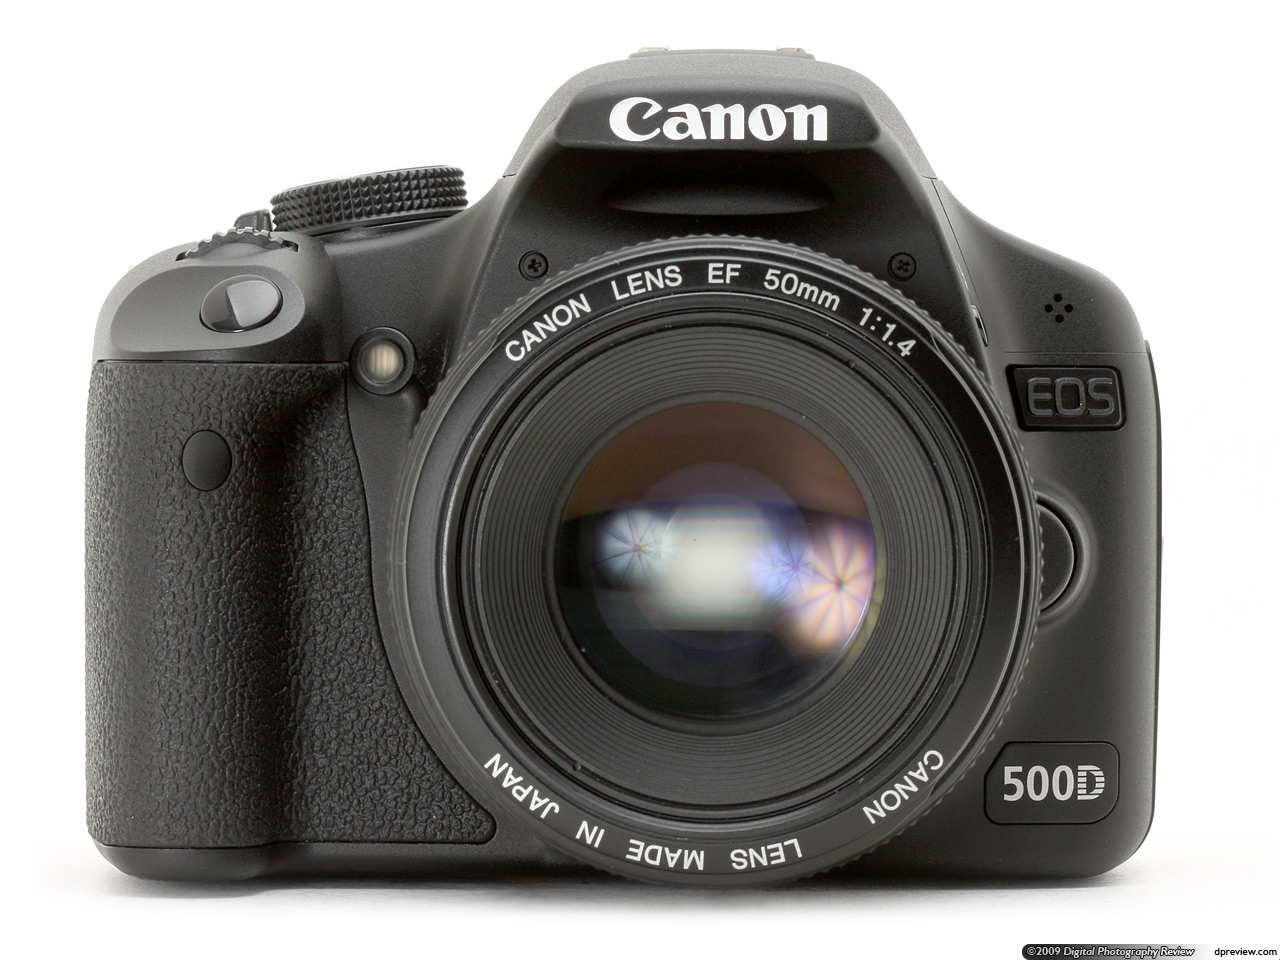 Canon eos rebel t1i instruction manual pdf download.